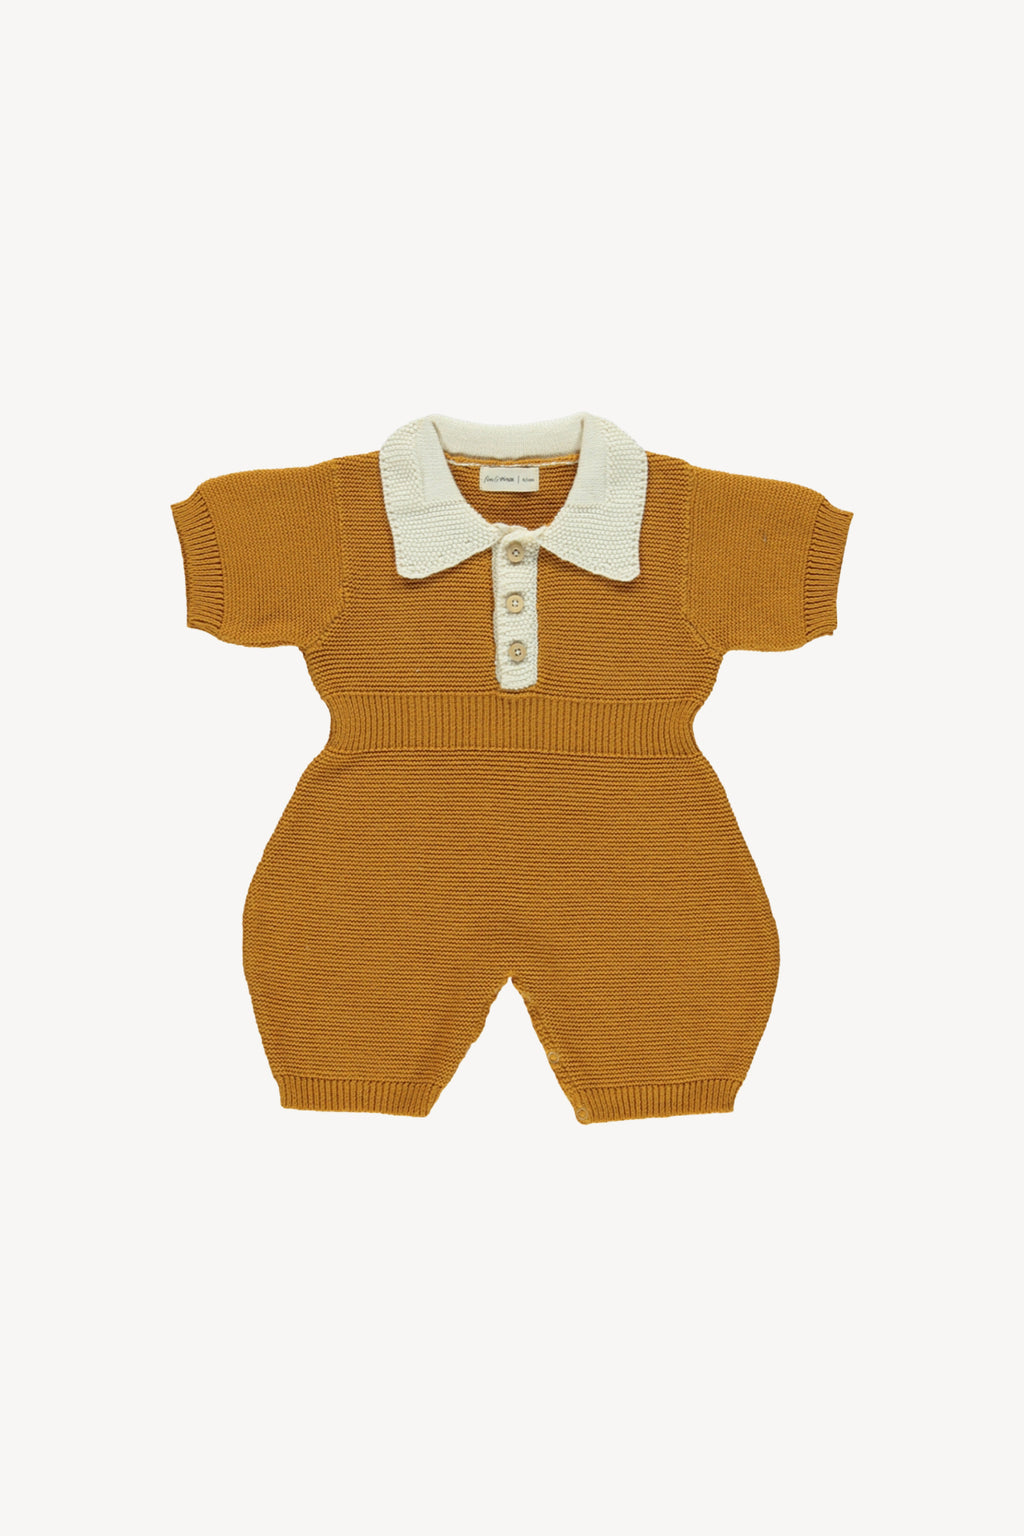 Fin and Vince - Collared Jumper (Wheat)